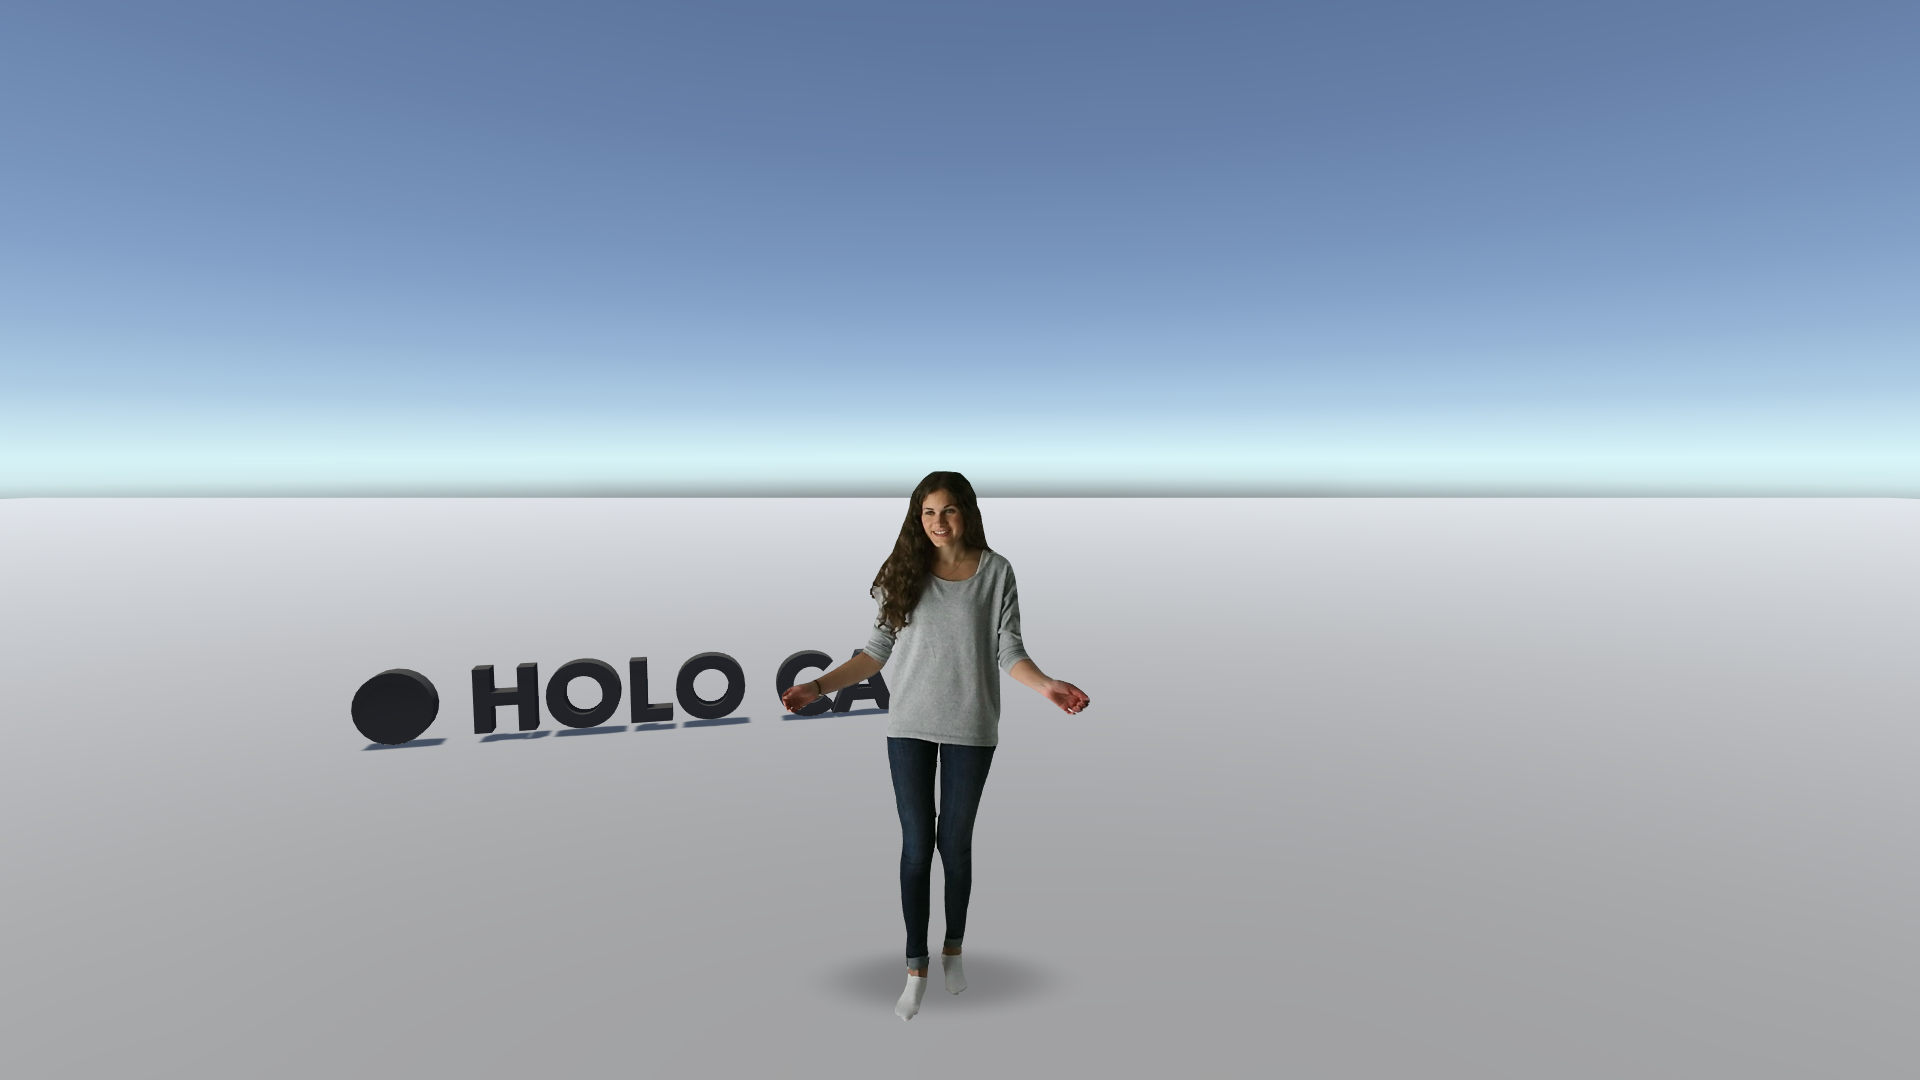 HoloCap Volumetric Video capture technology for holograms in Virtual Reality